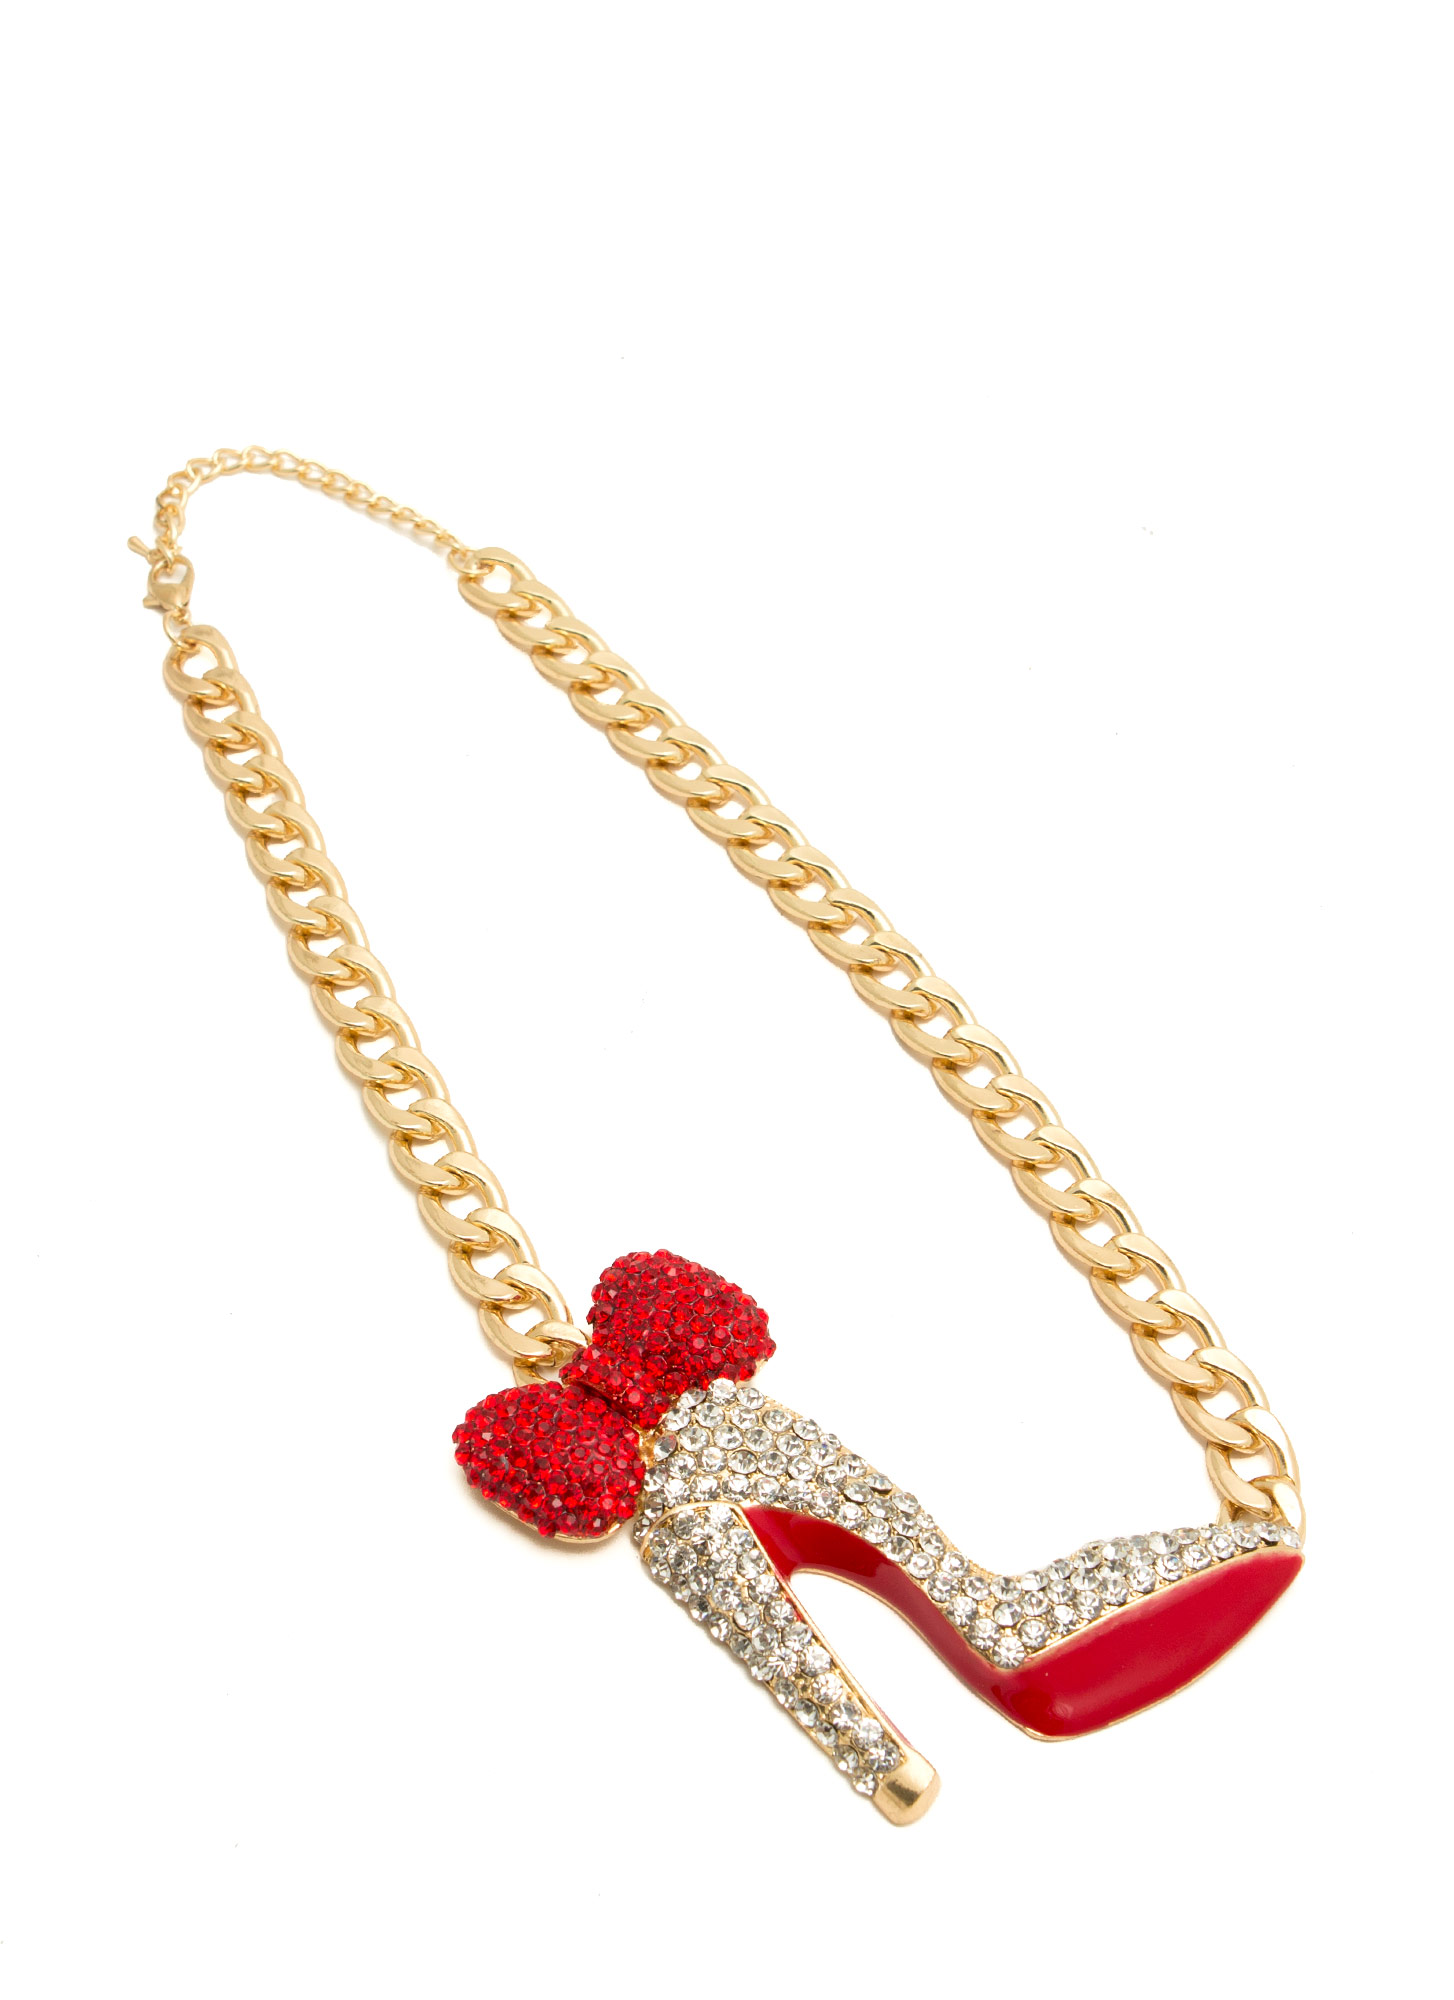 Oversized Jeweled Bow Heel Necklace GOLDCLEAR